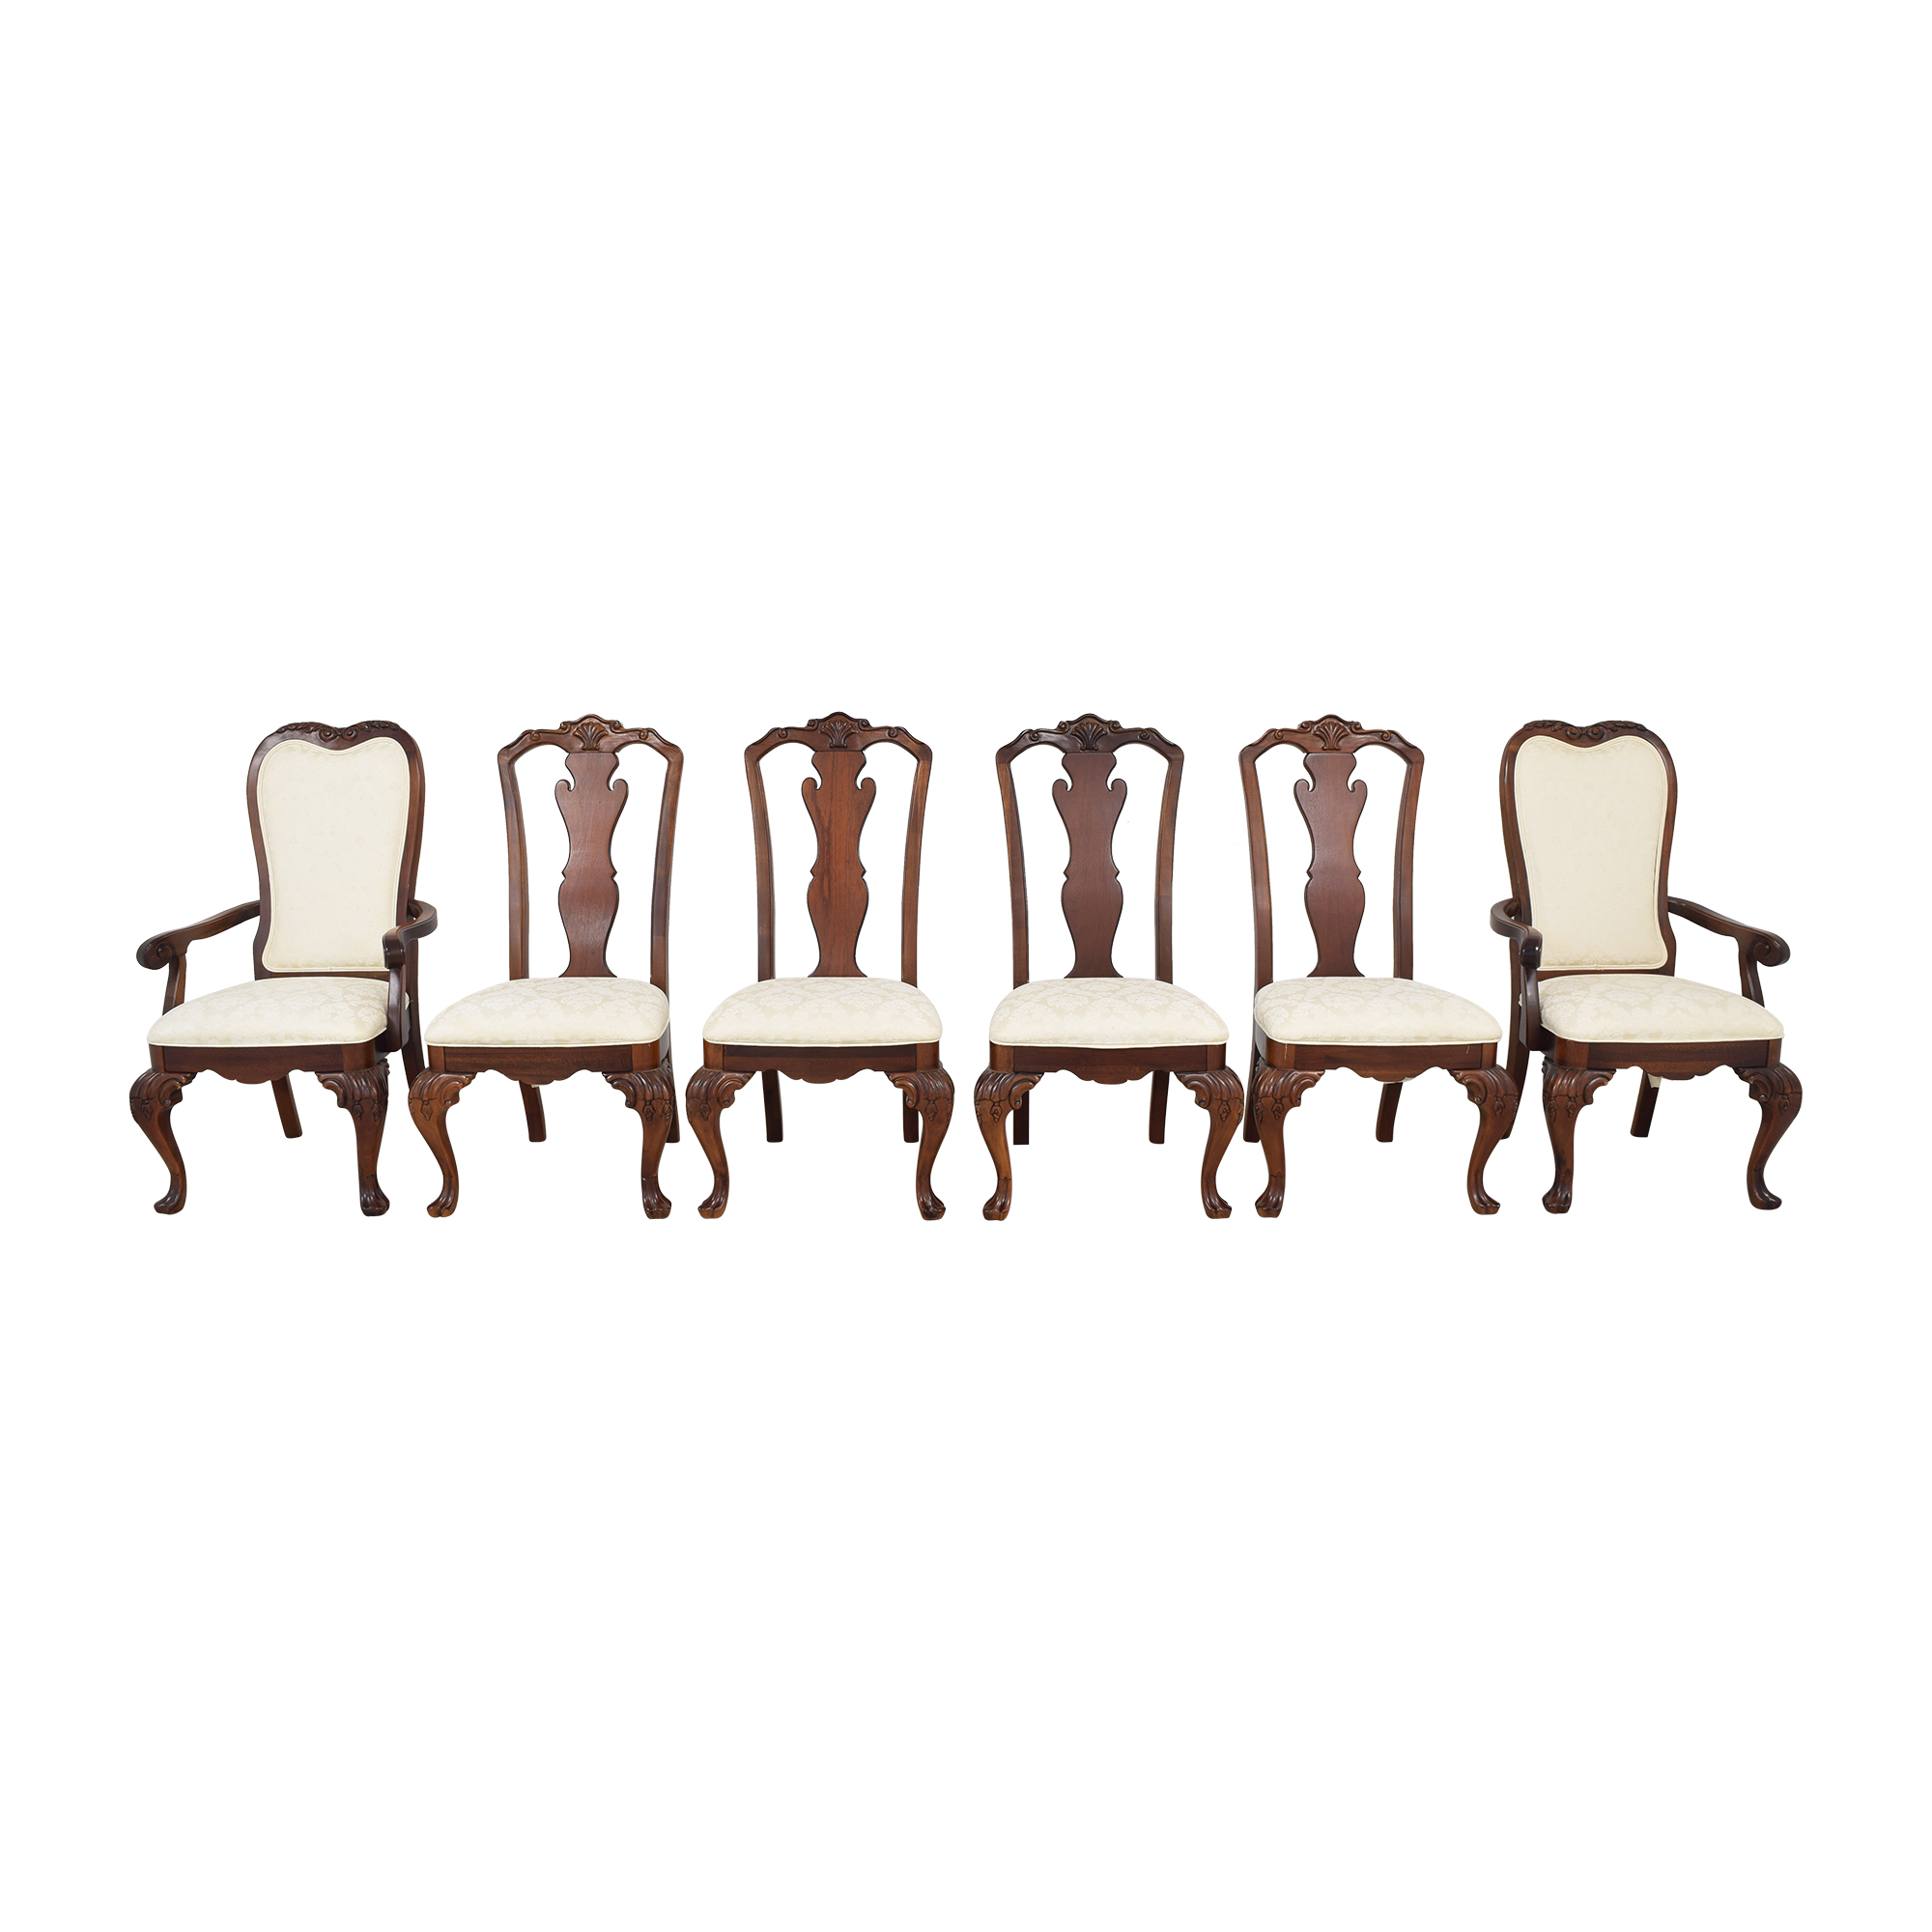 Thomasville Thomasville Upholstered Dining Chairs used